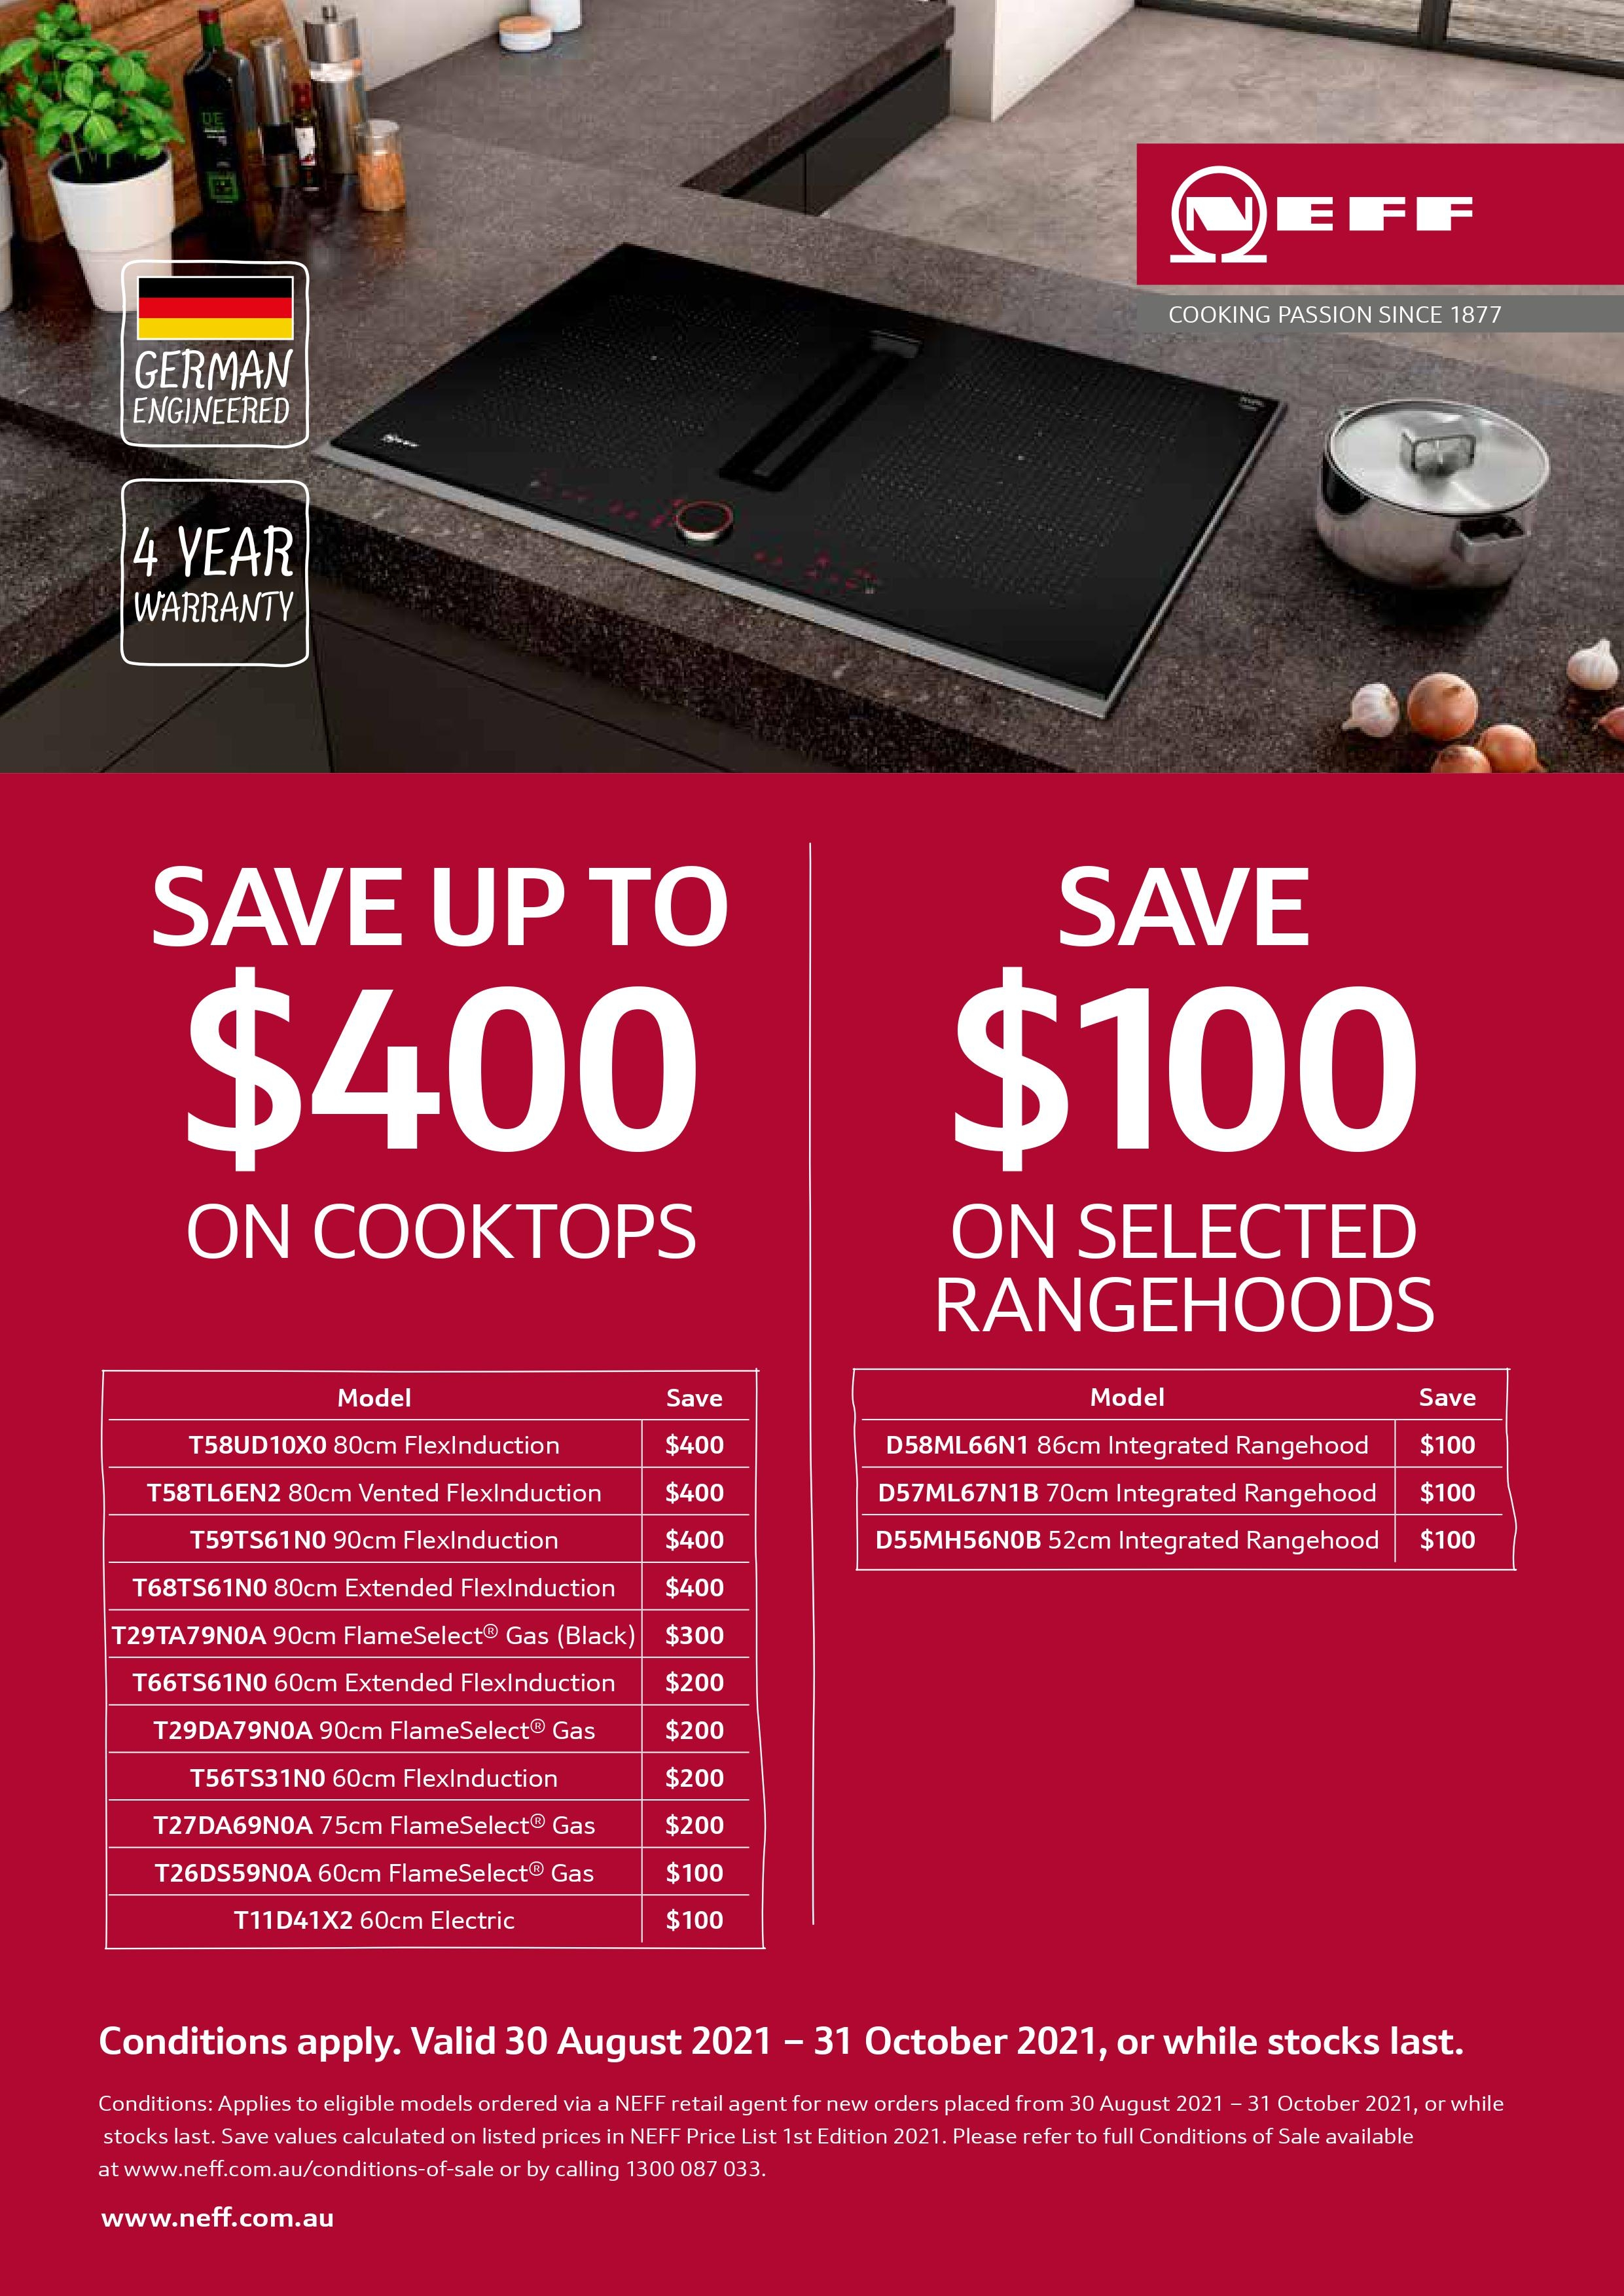 NEFF Save Up To $400 Cooktops Promo Sep Oct 2021